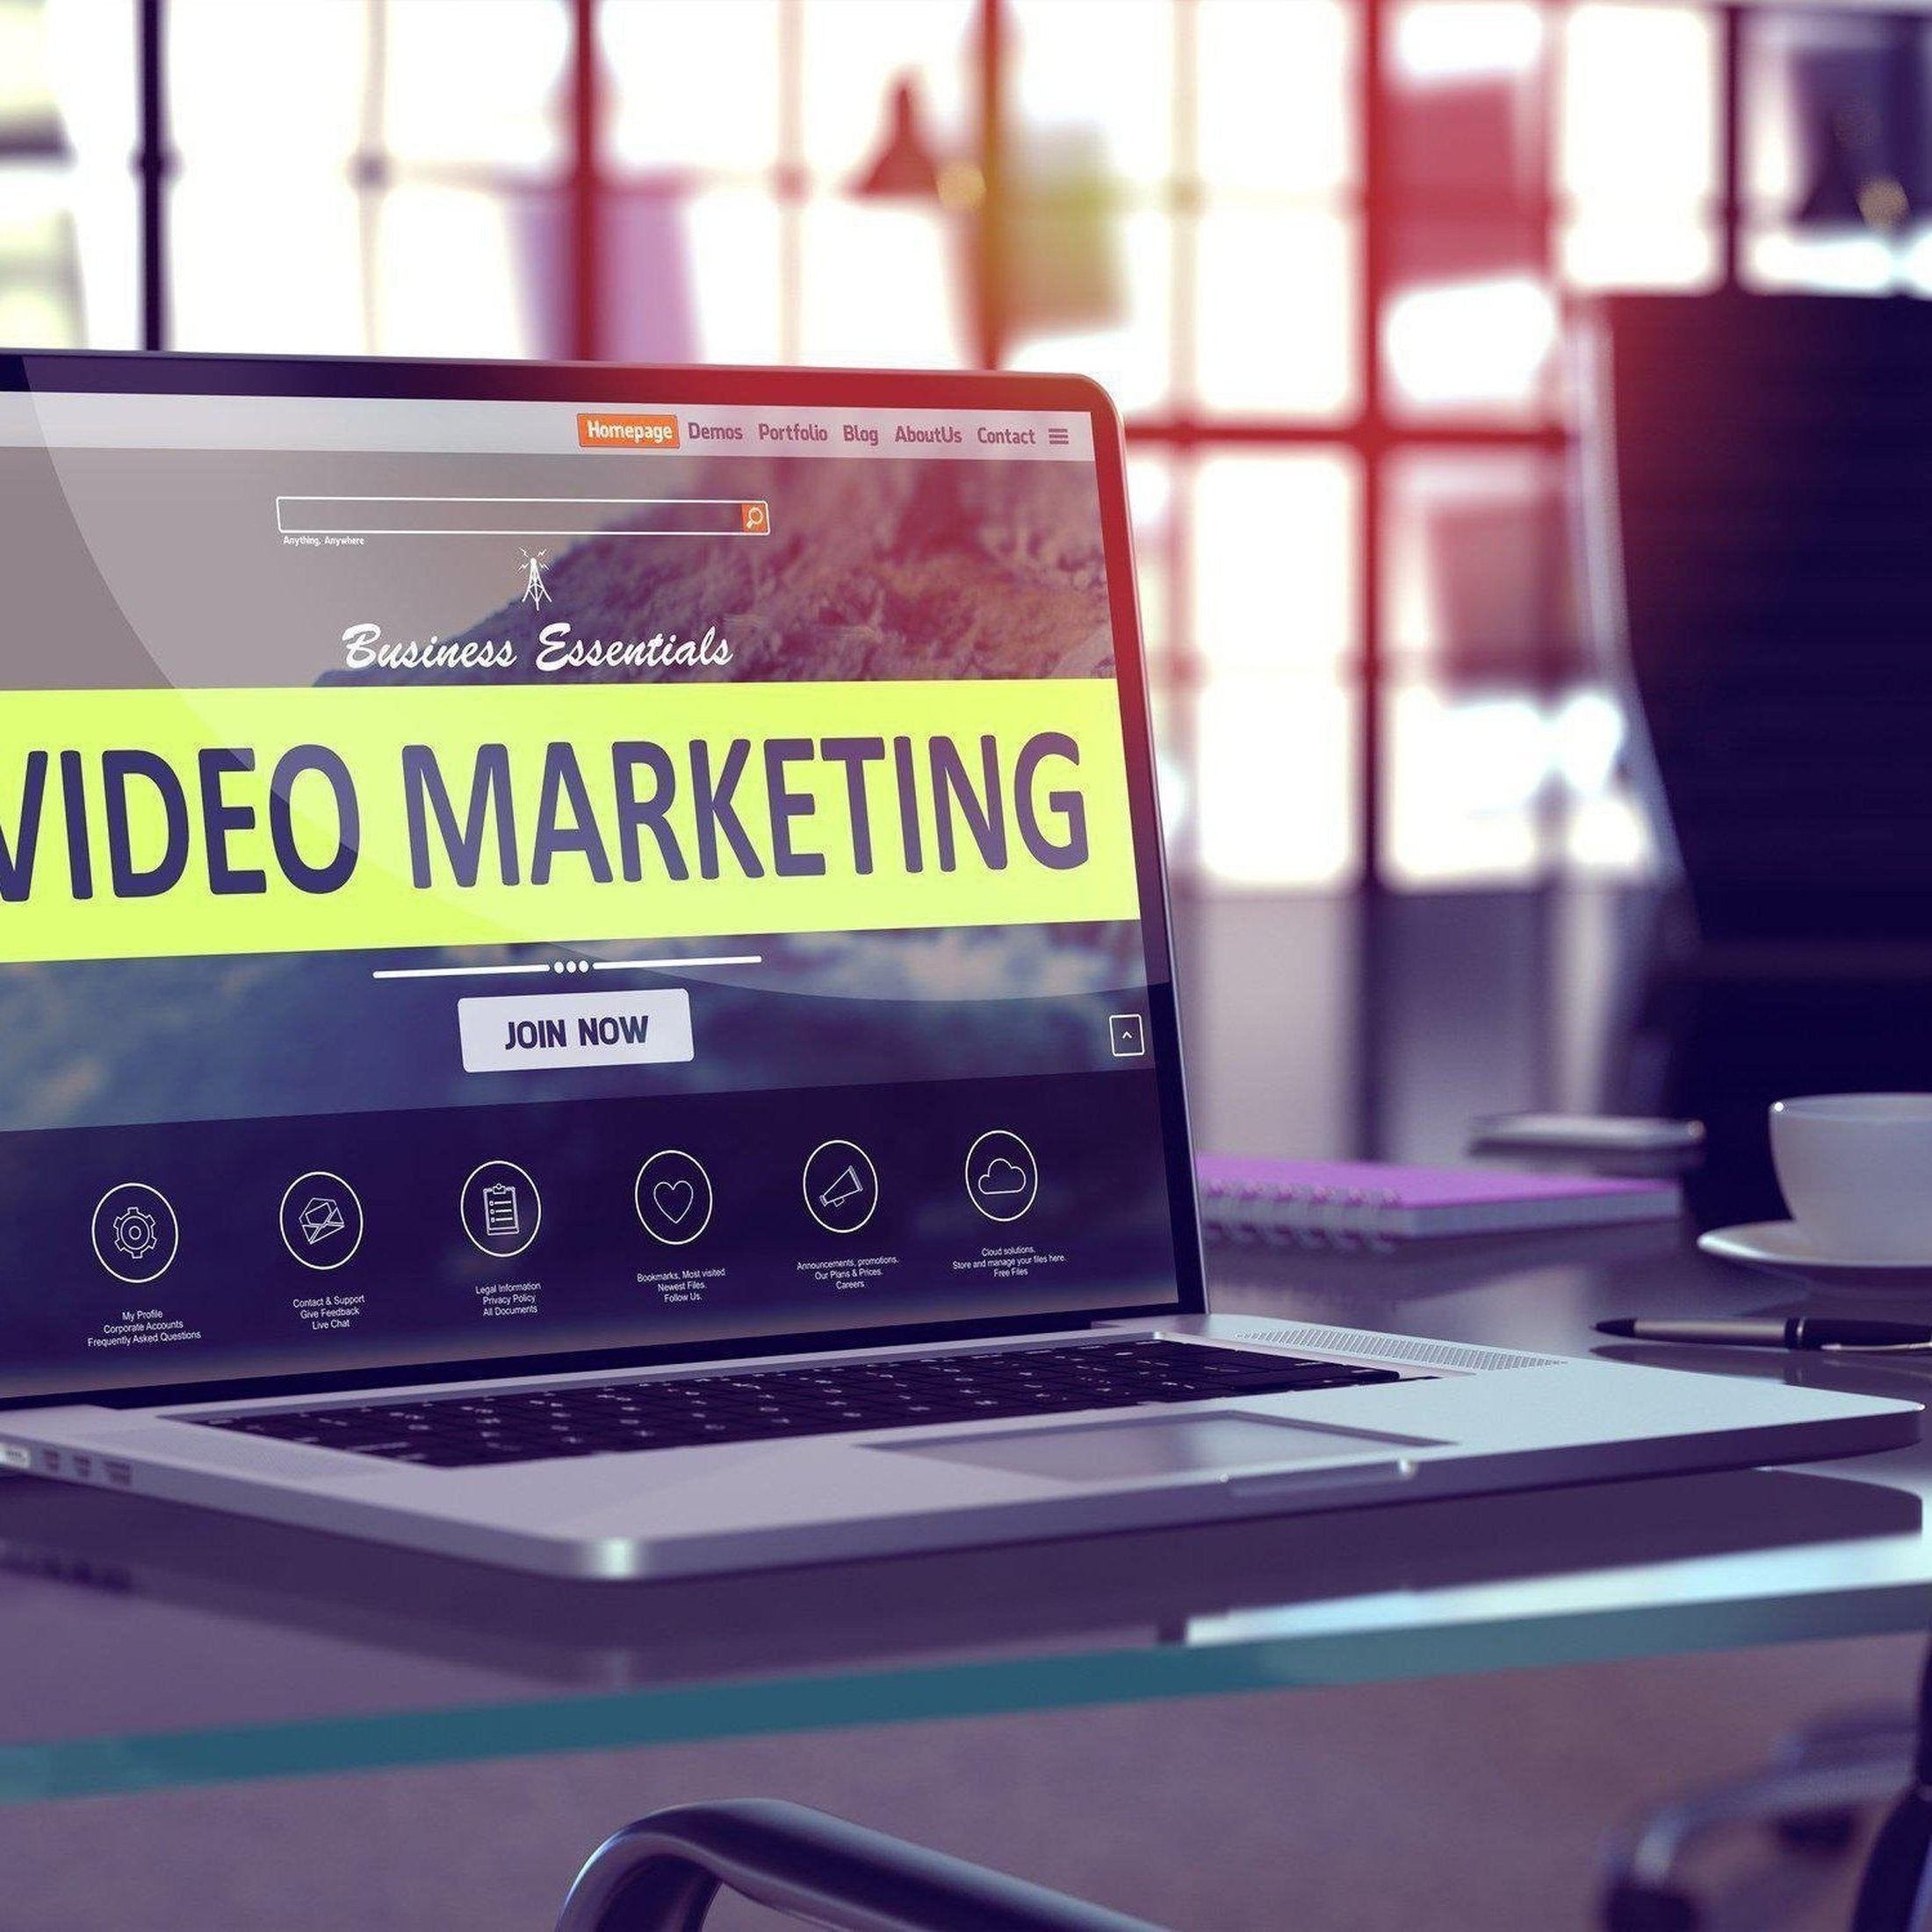 Vape Ads & More: 8 Ways to Use Video Marketing for Your Vape Shop